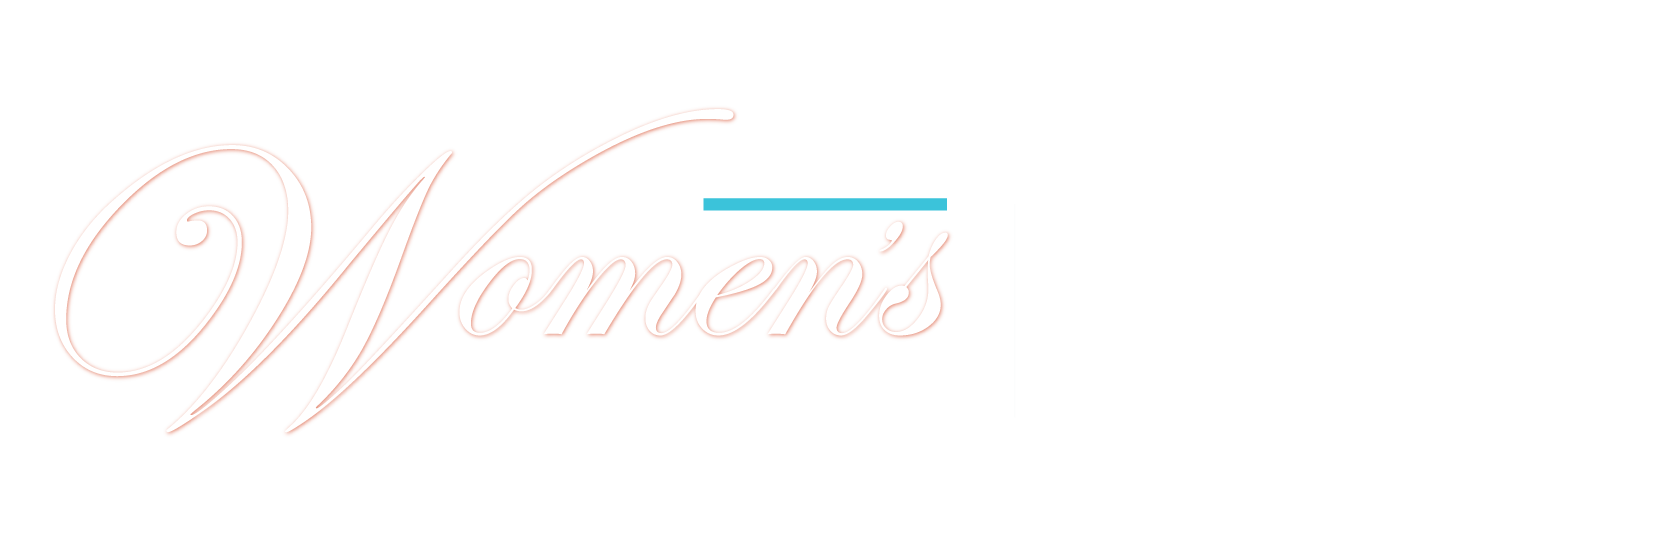 Women's History Month - Working to form a more perfect union: Honoring women in public service and government.